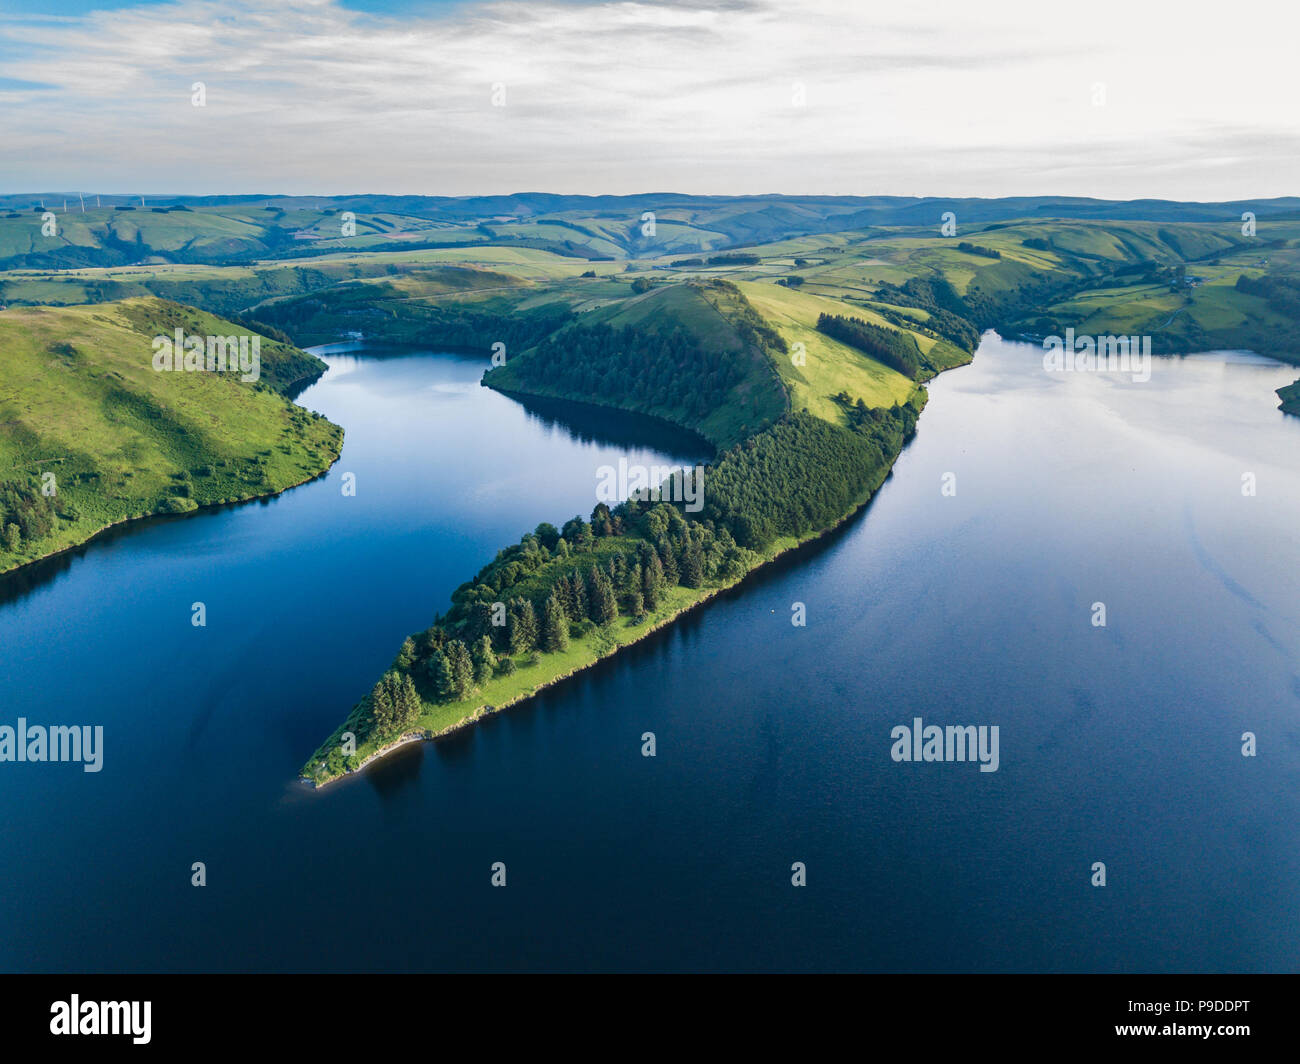 An aerial landscape of the lake near the Llyn Clywedog Dam, Llanidloes, Wales, UK - Stock Image